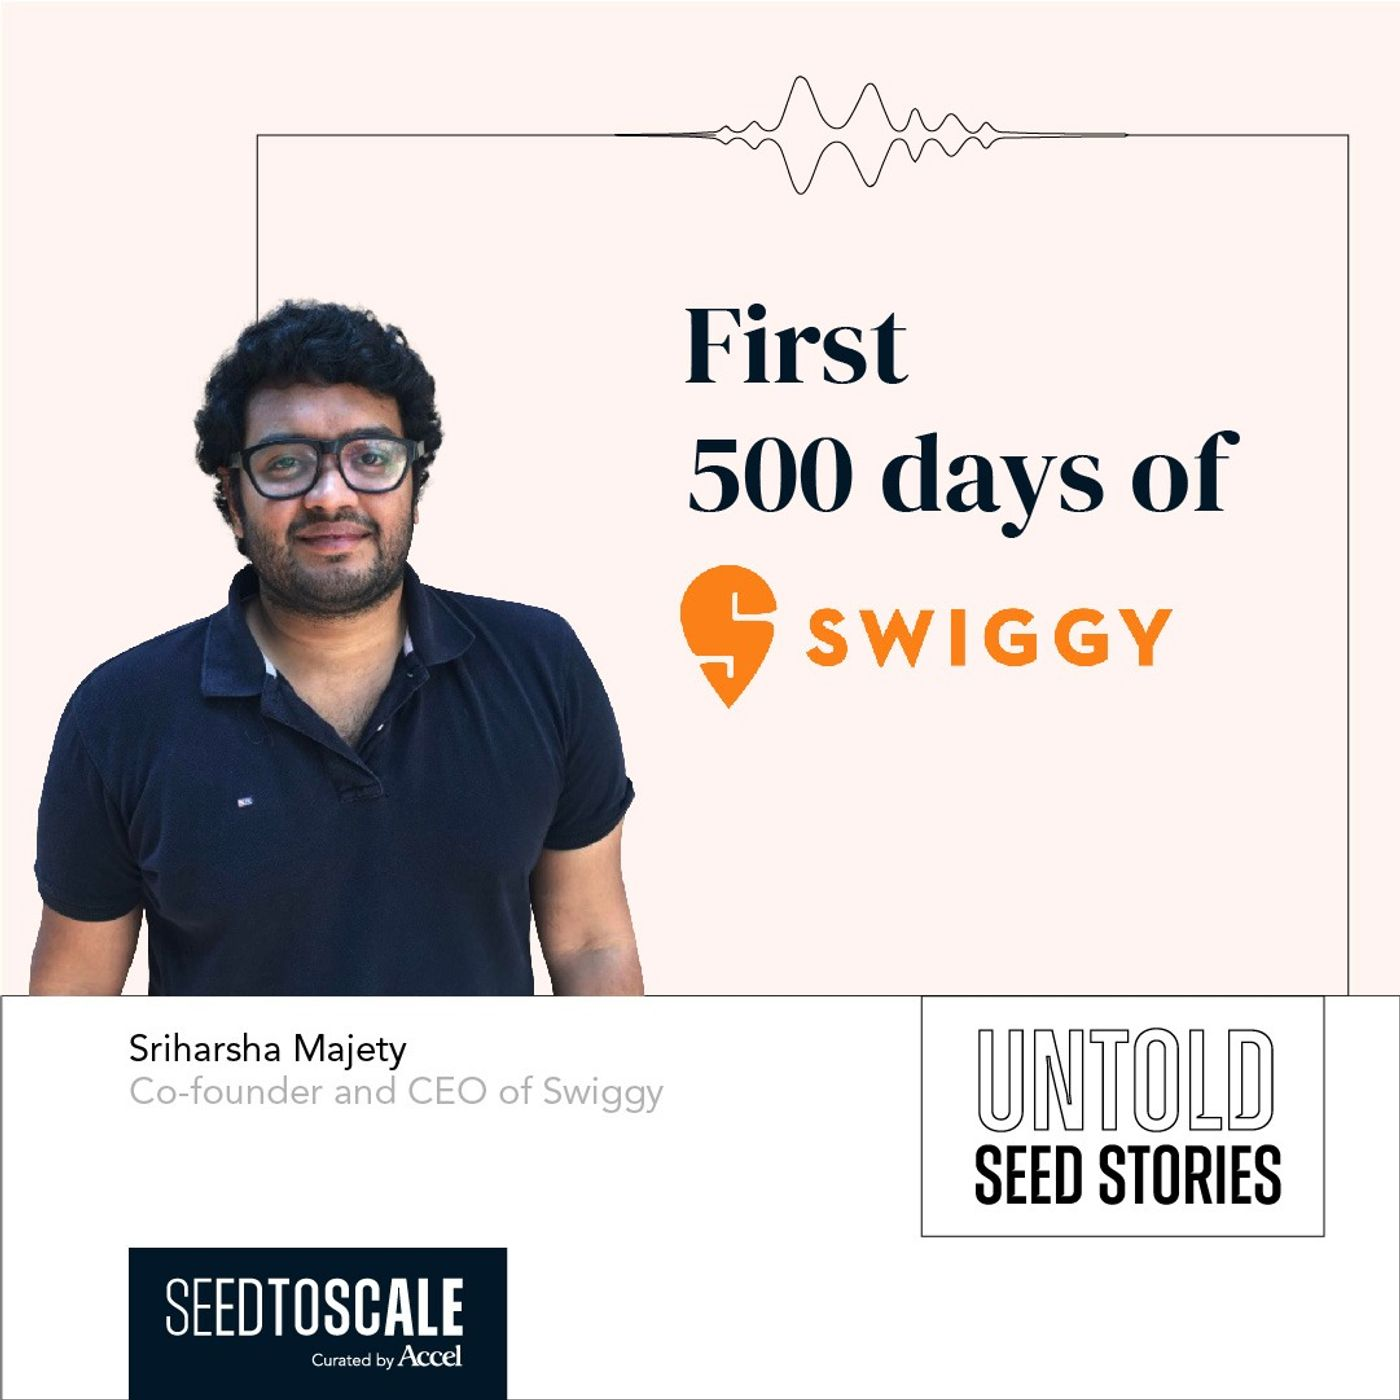 INSIGHTS #61 – Untold Seed Stories: First 500 Days of Swiggy